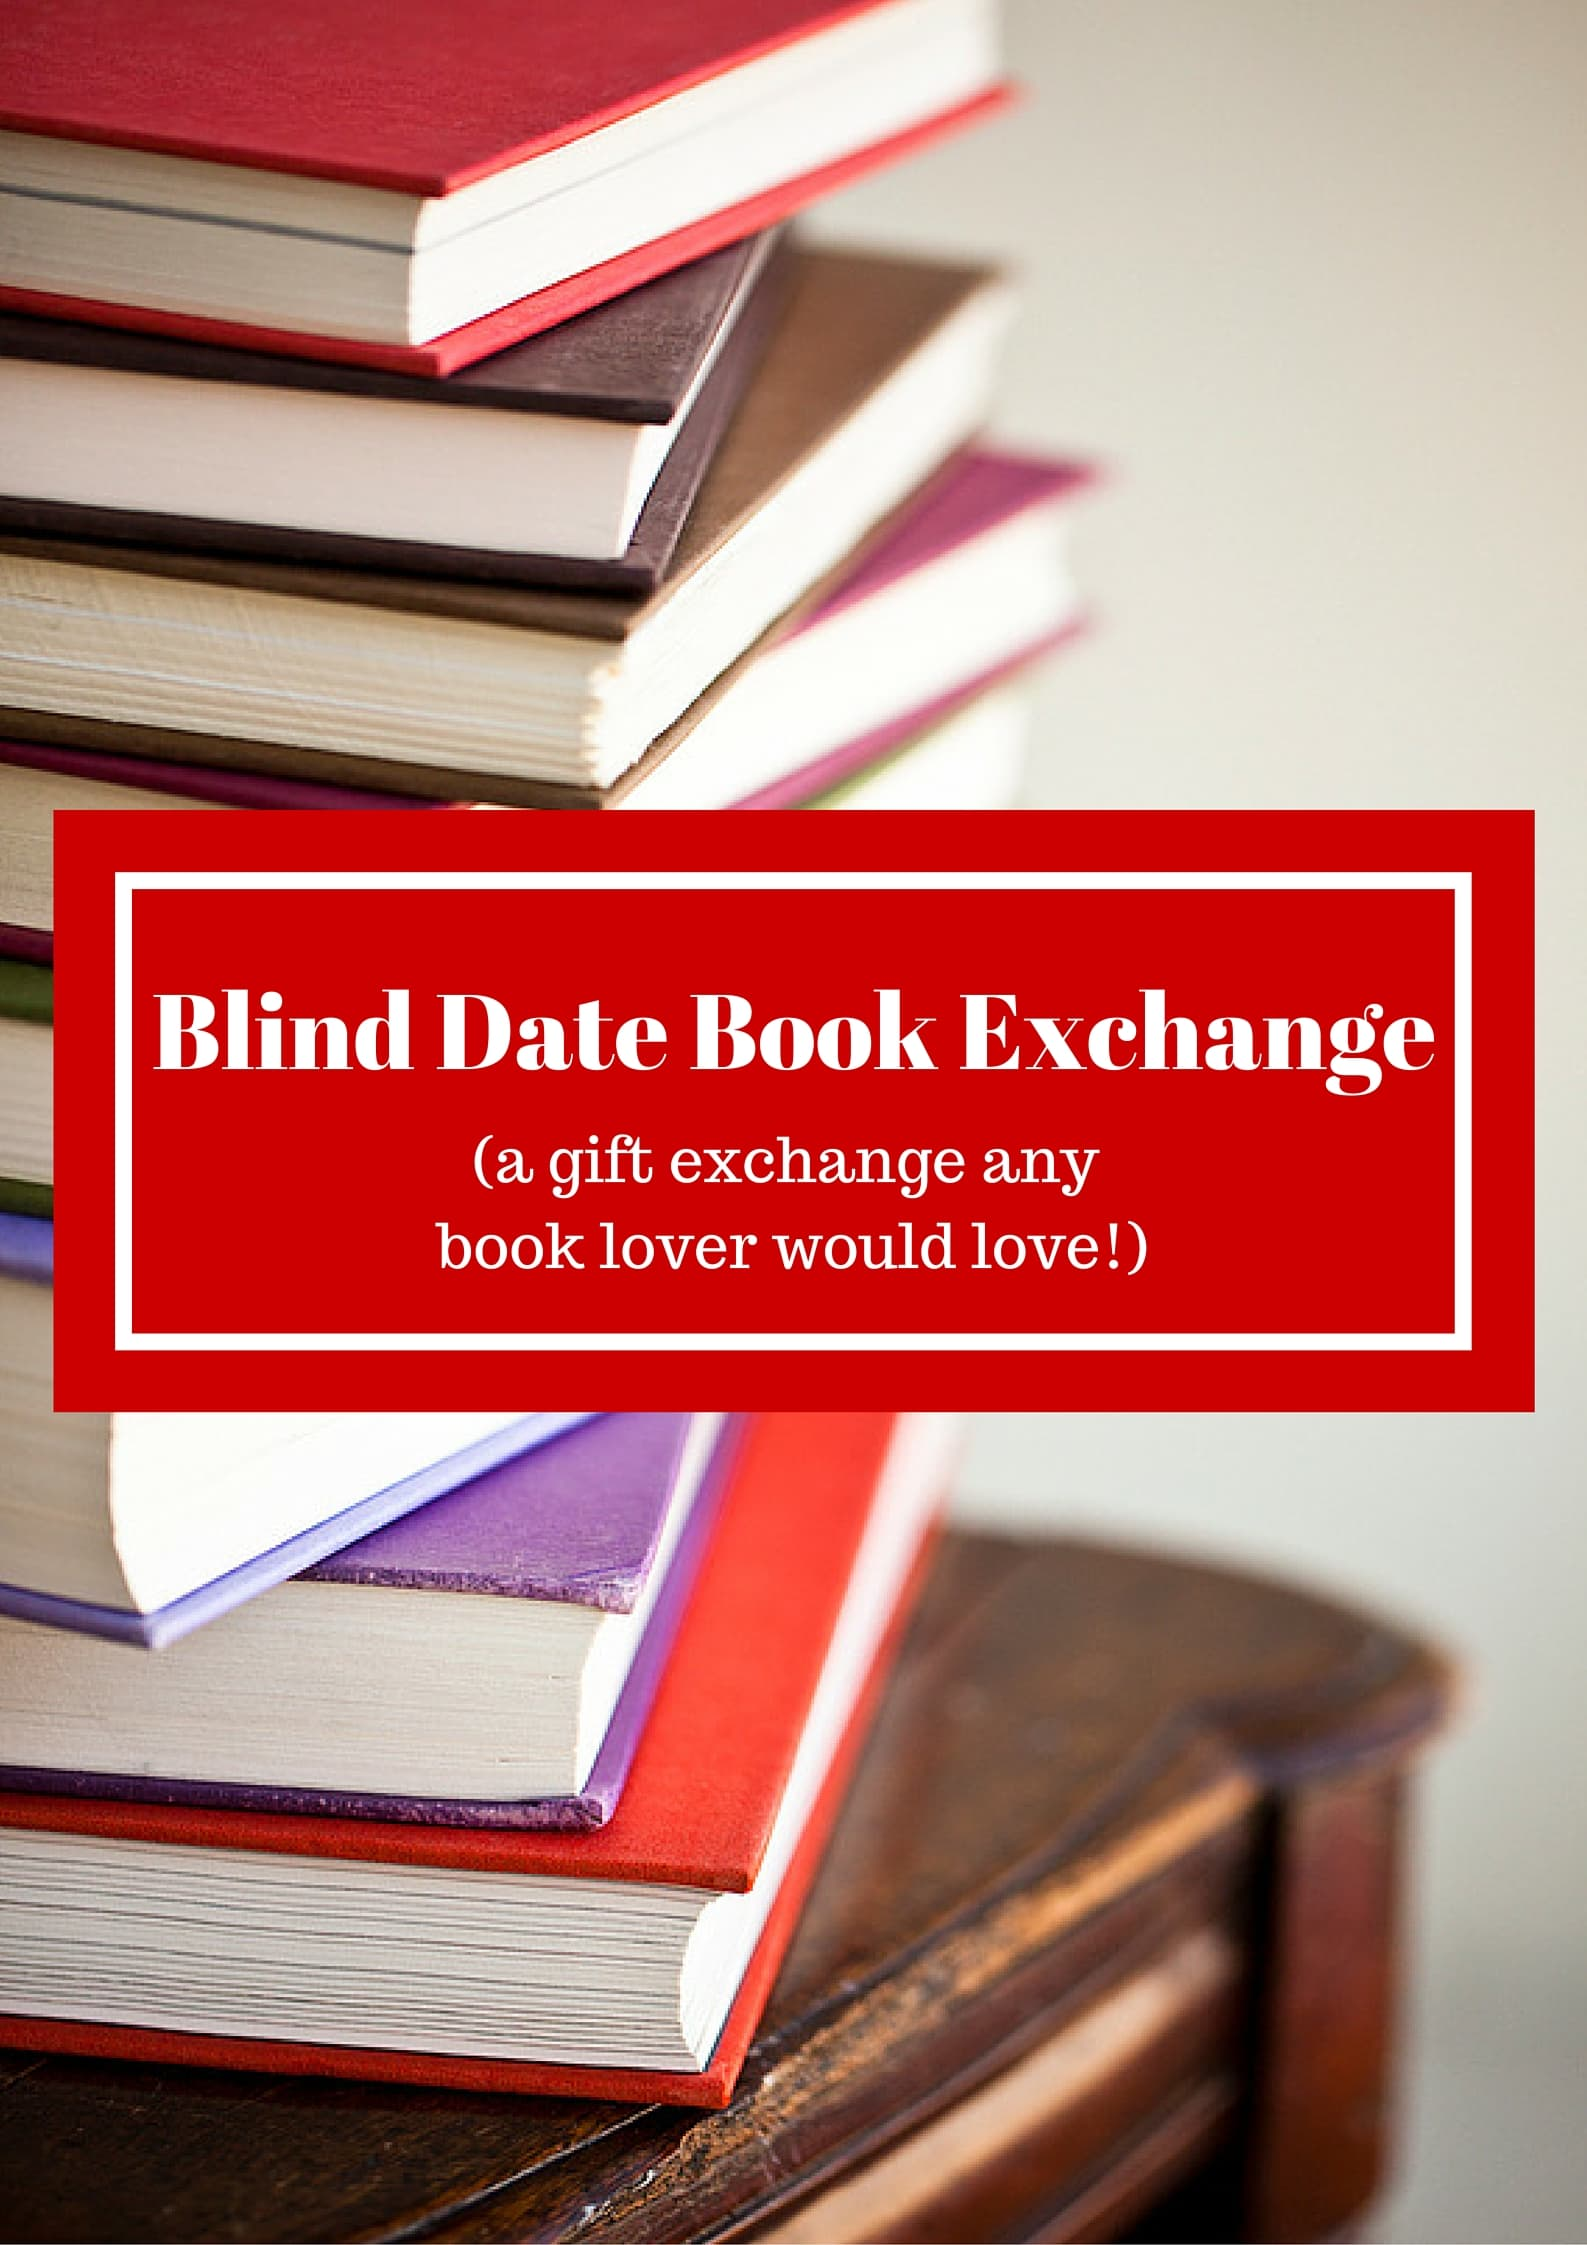 Blind Date Book Exchange